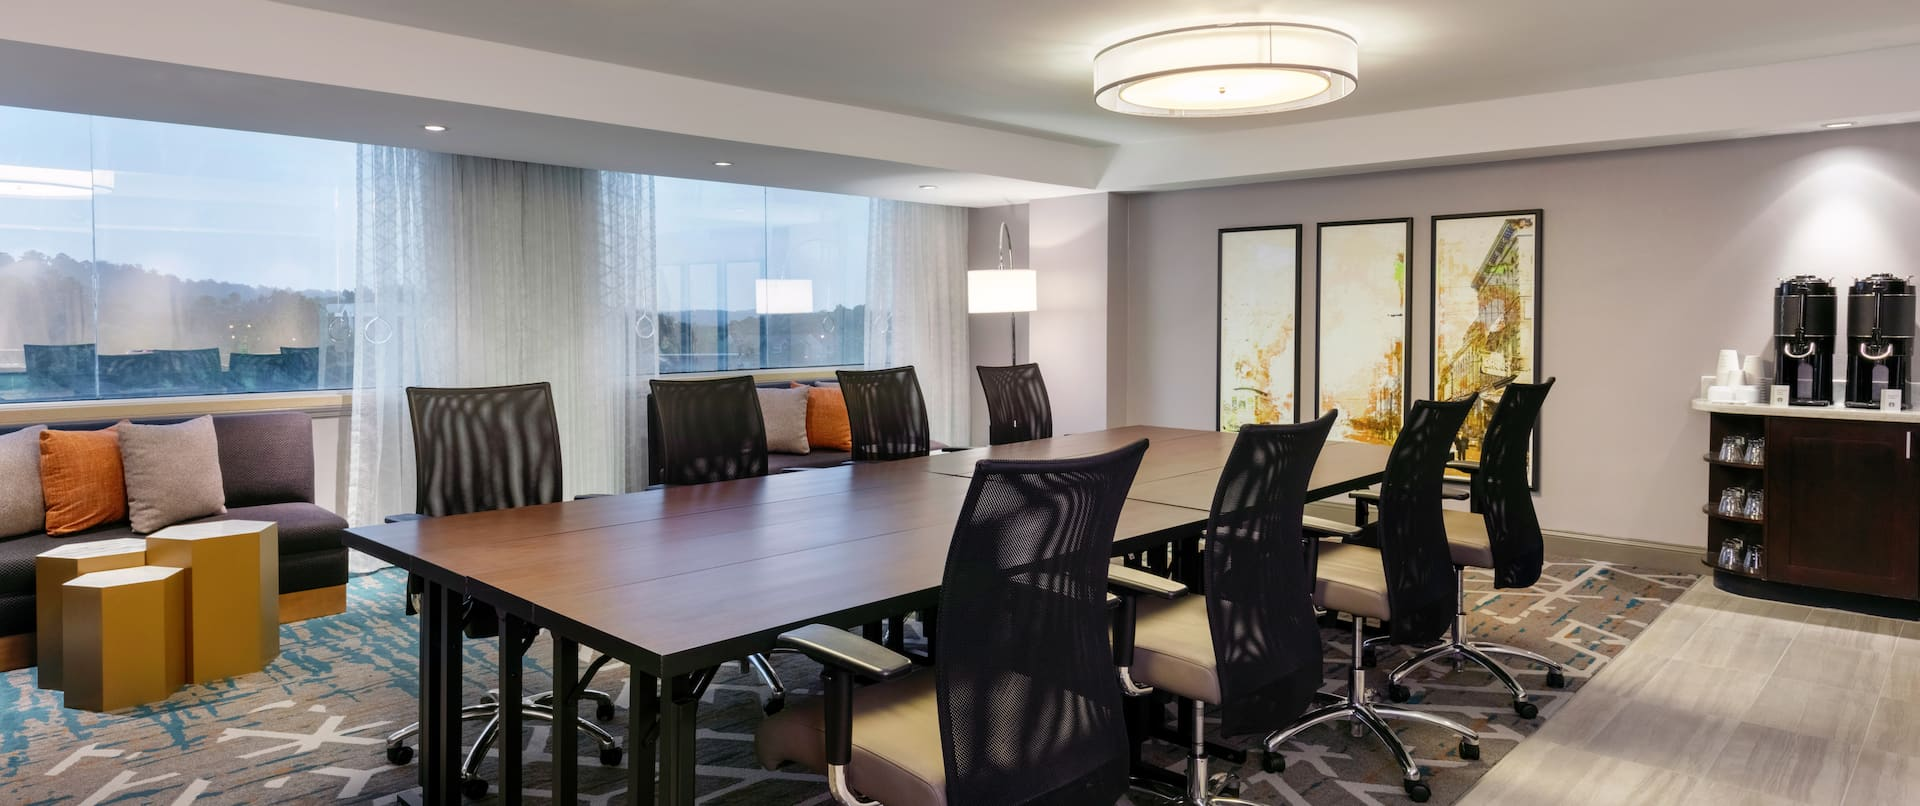 8th Floor Conference Room